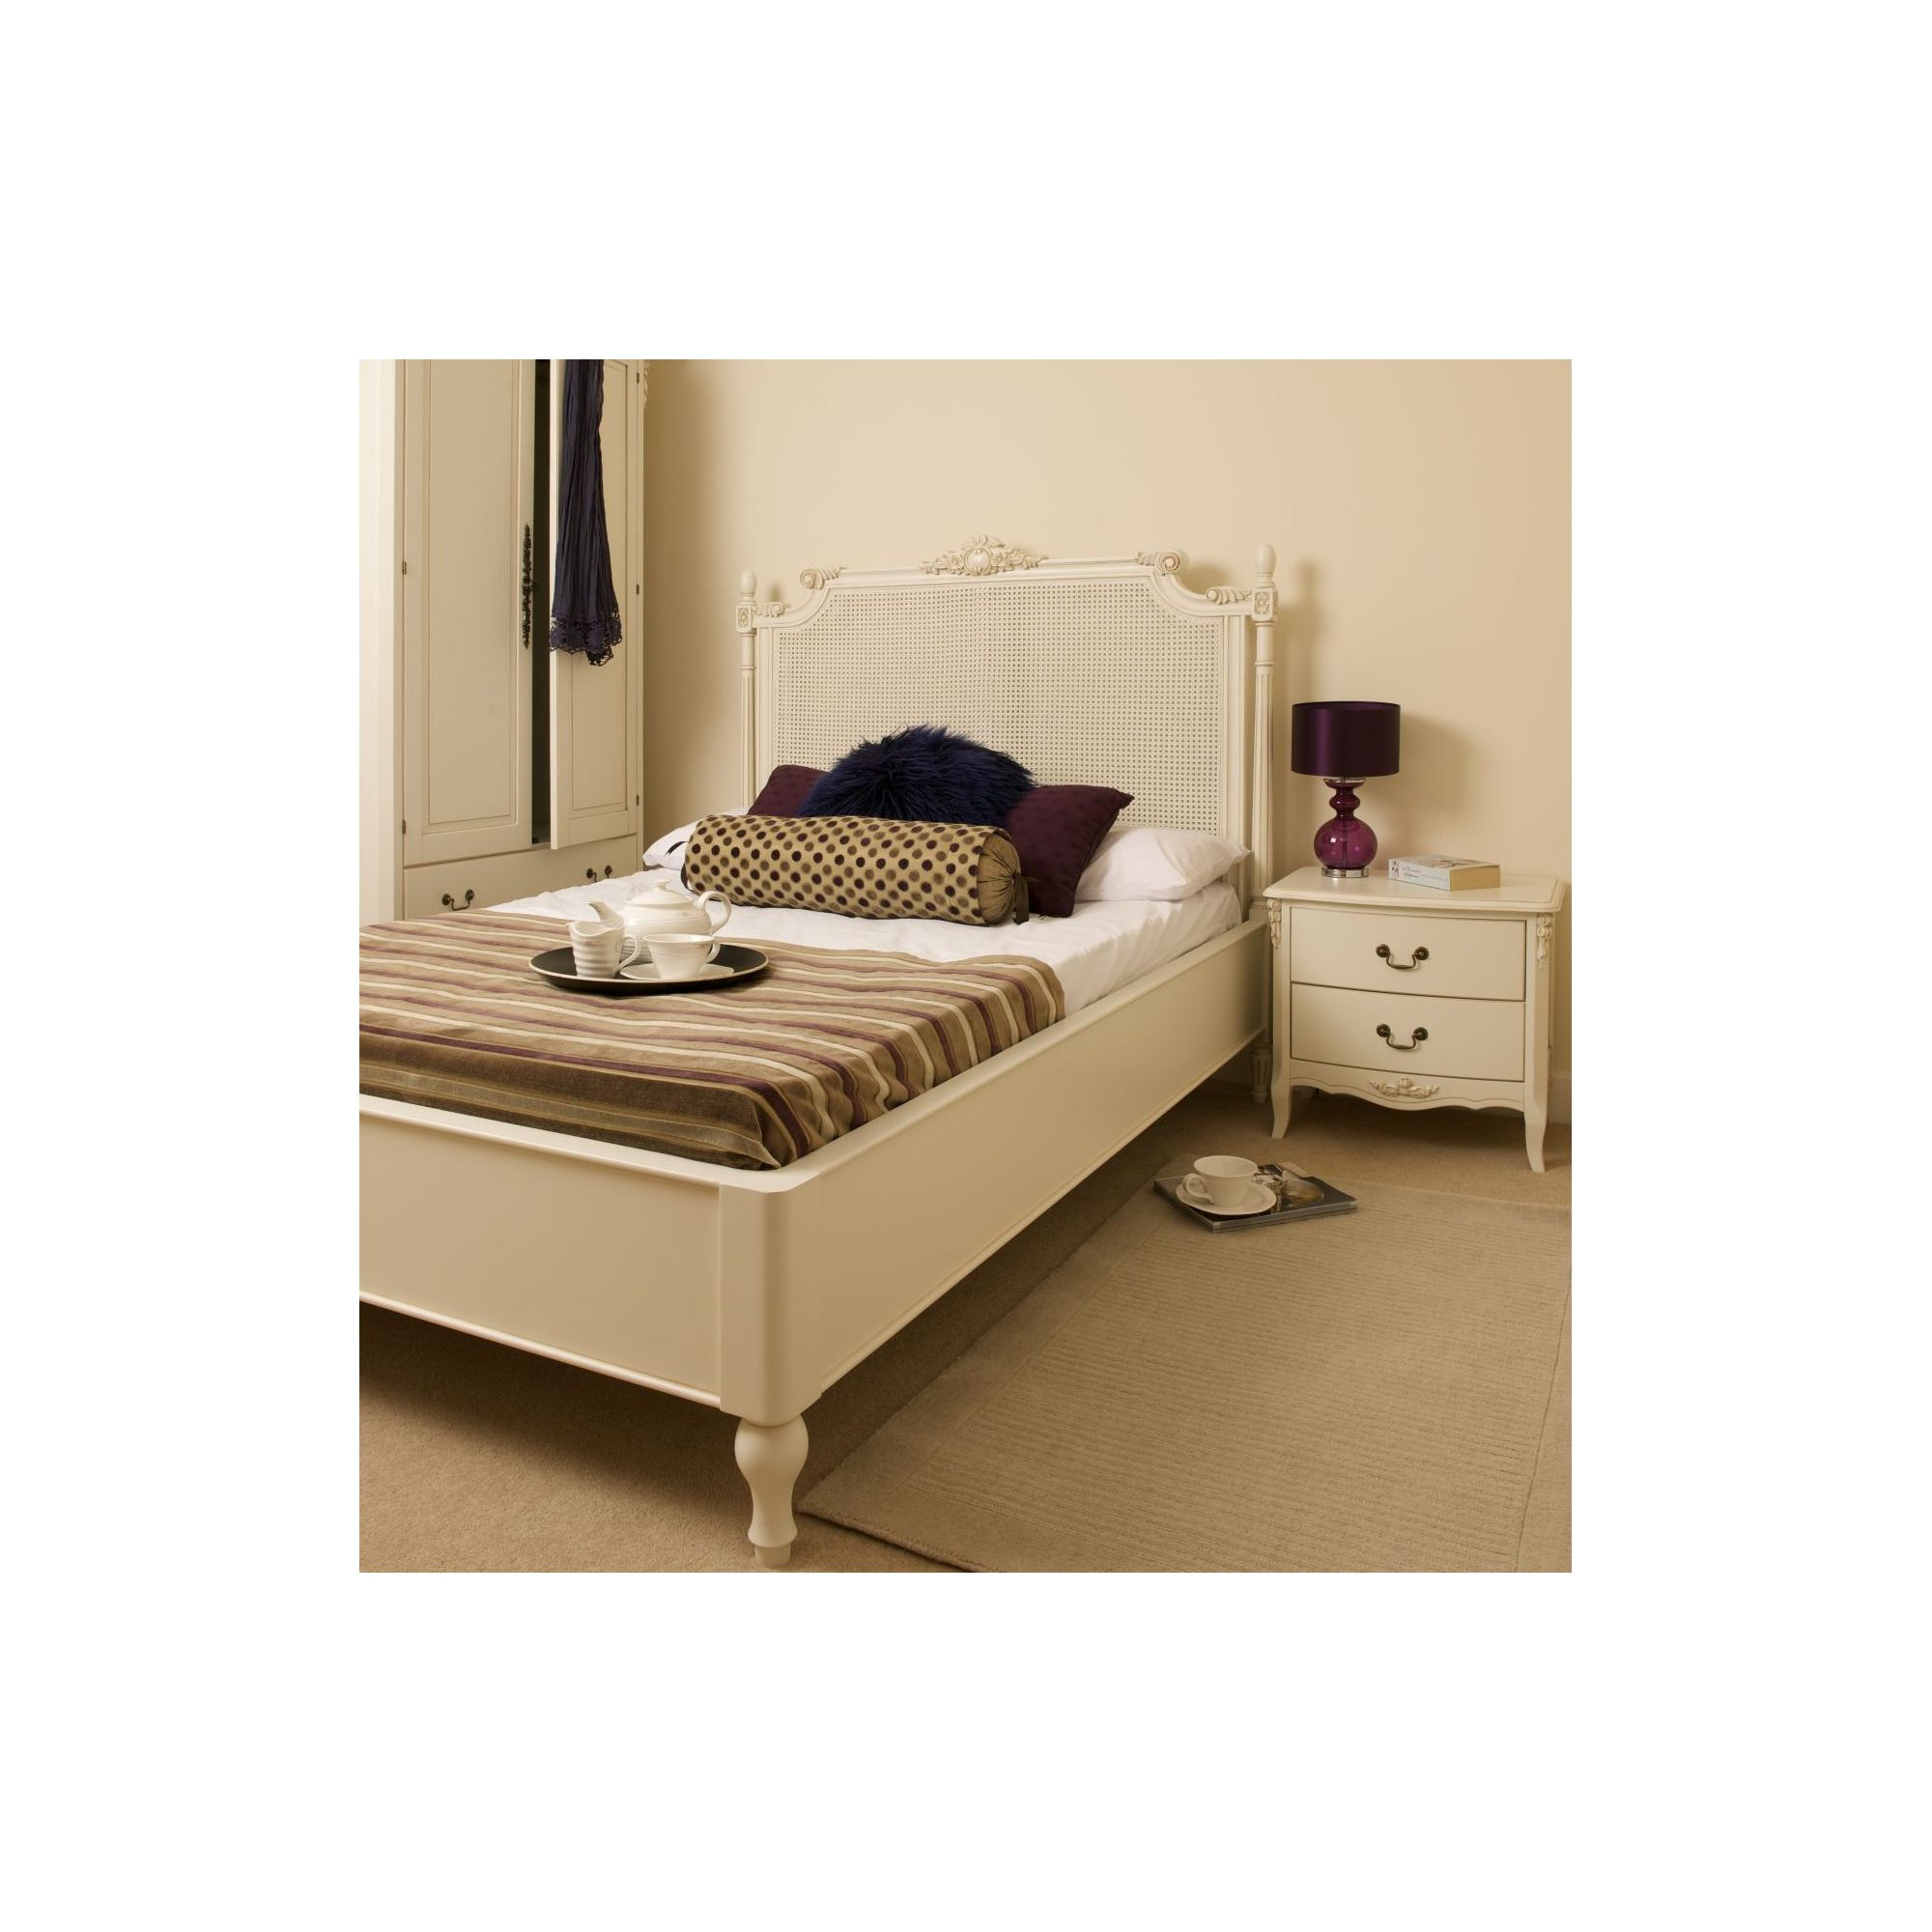 Kelburn Furniture Laurent Rattan Bed - Double at Tesco Direct